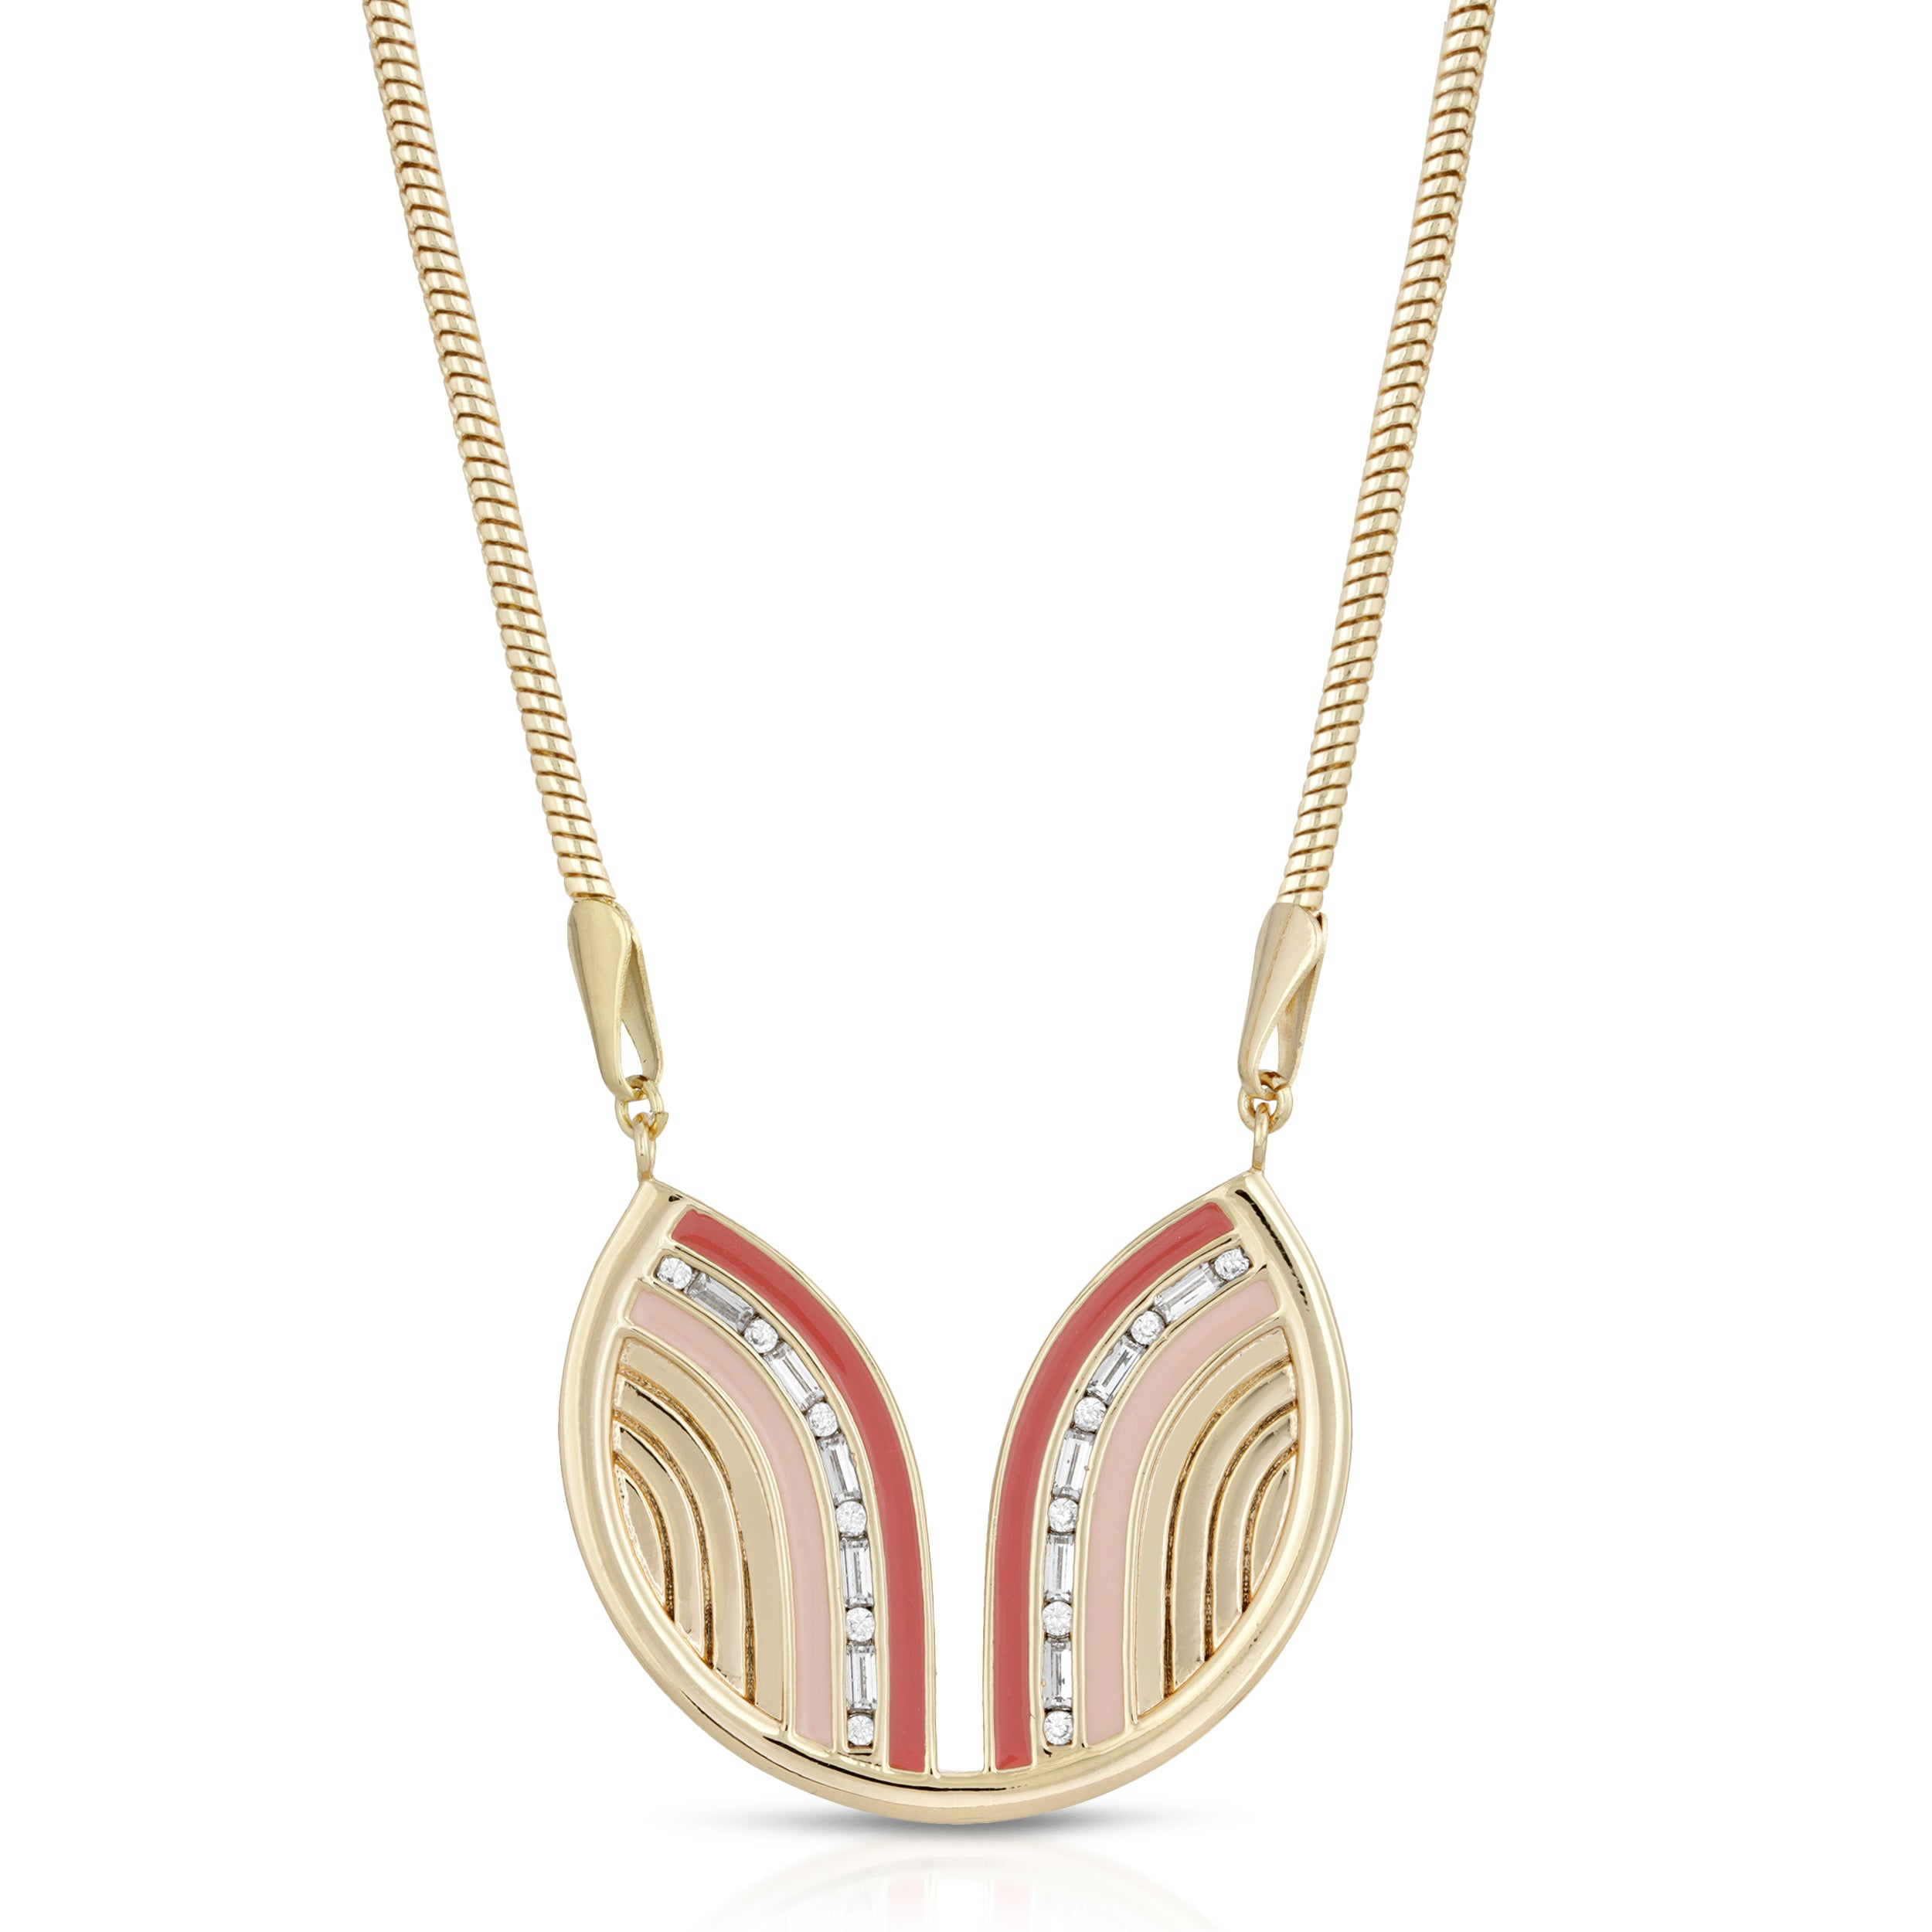 South Beach Necklace - Coral/Cinnamon